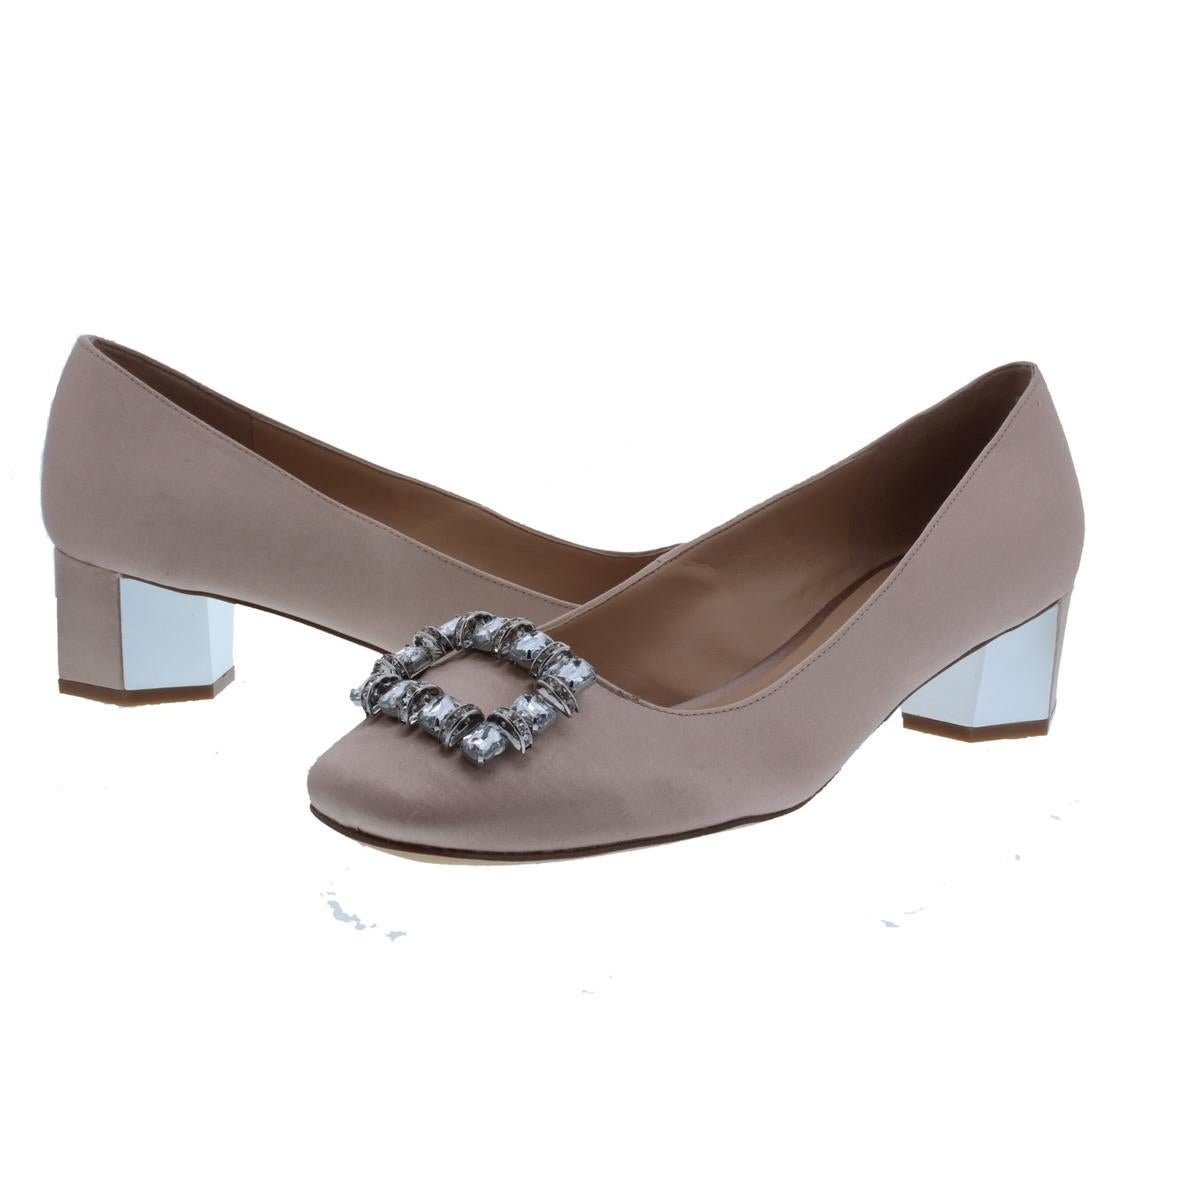 a6626b369b0 Shop Karl Lagerfeld Paris Womens Calina7 Block Heels Solid Satin - Free  Shipping On Orders Over  45 - Overstock - 21139754